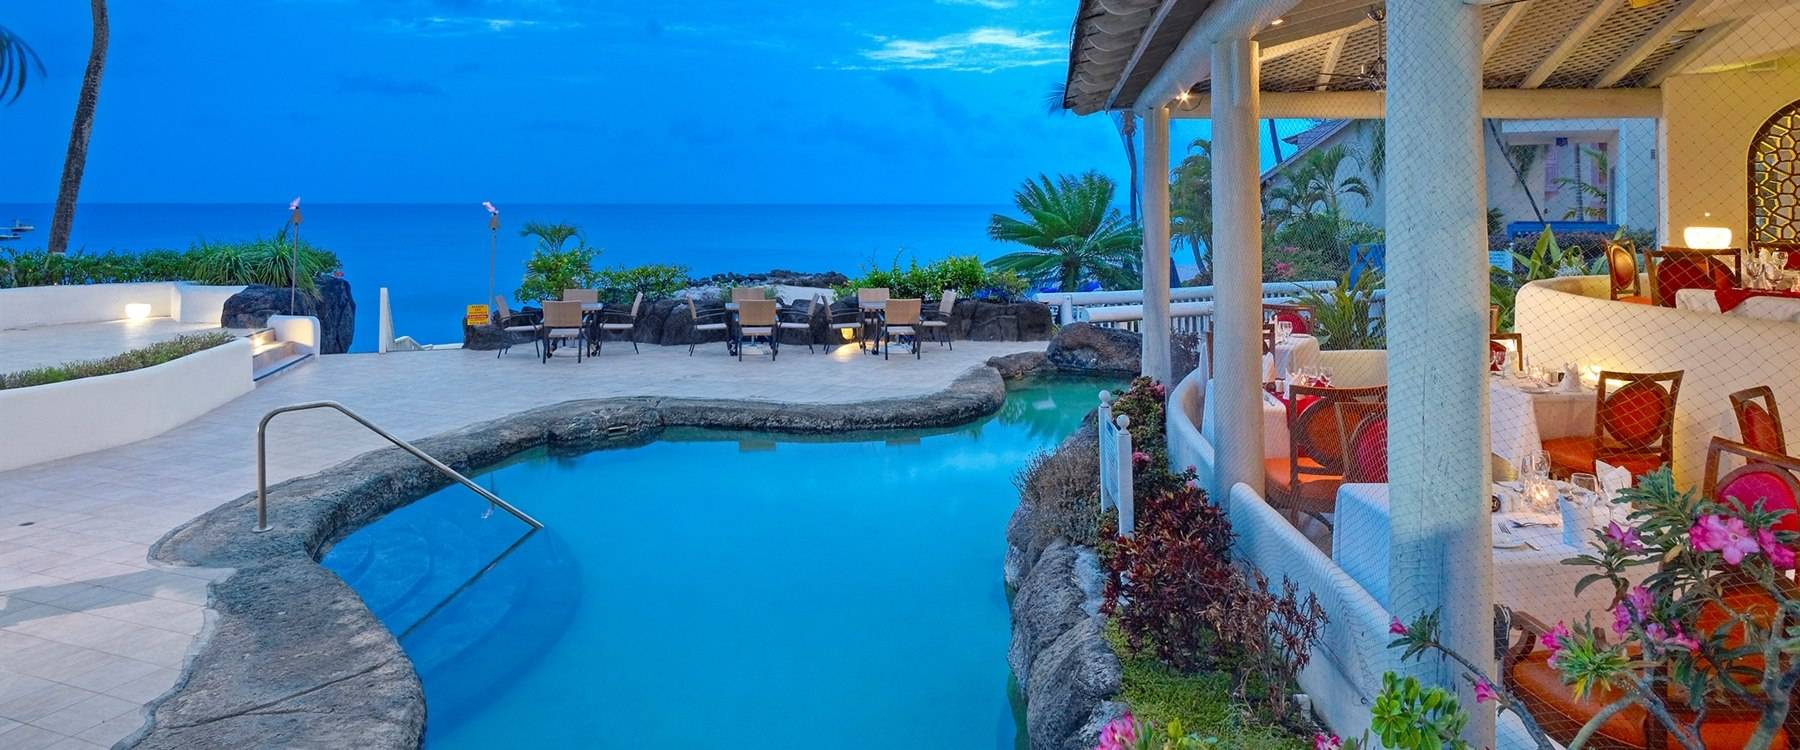 Reflections Restaurant at Crystal Cove by Elegant Hotels, Barbados